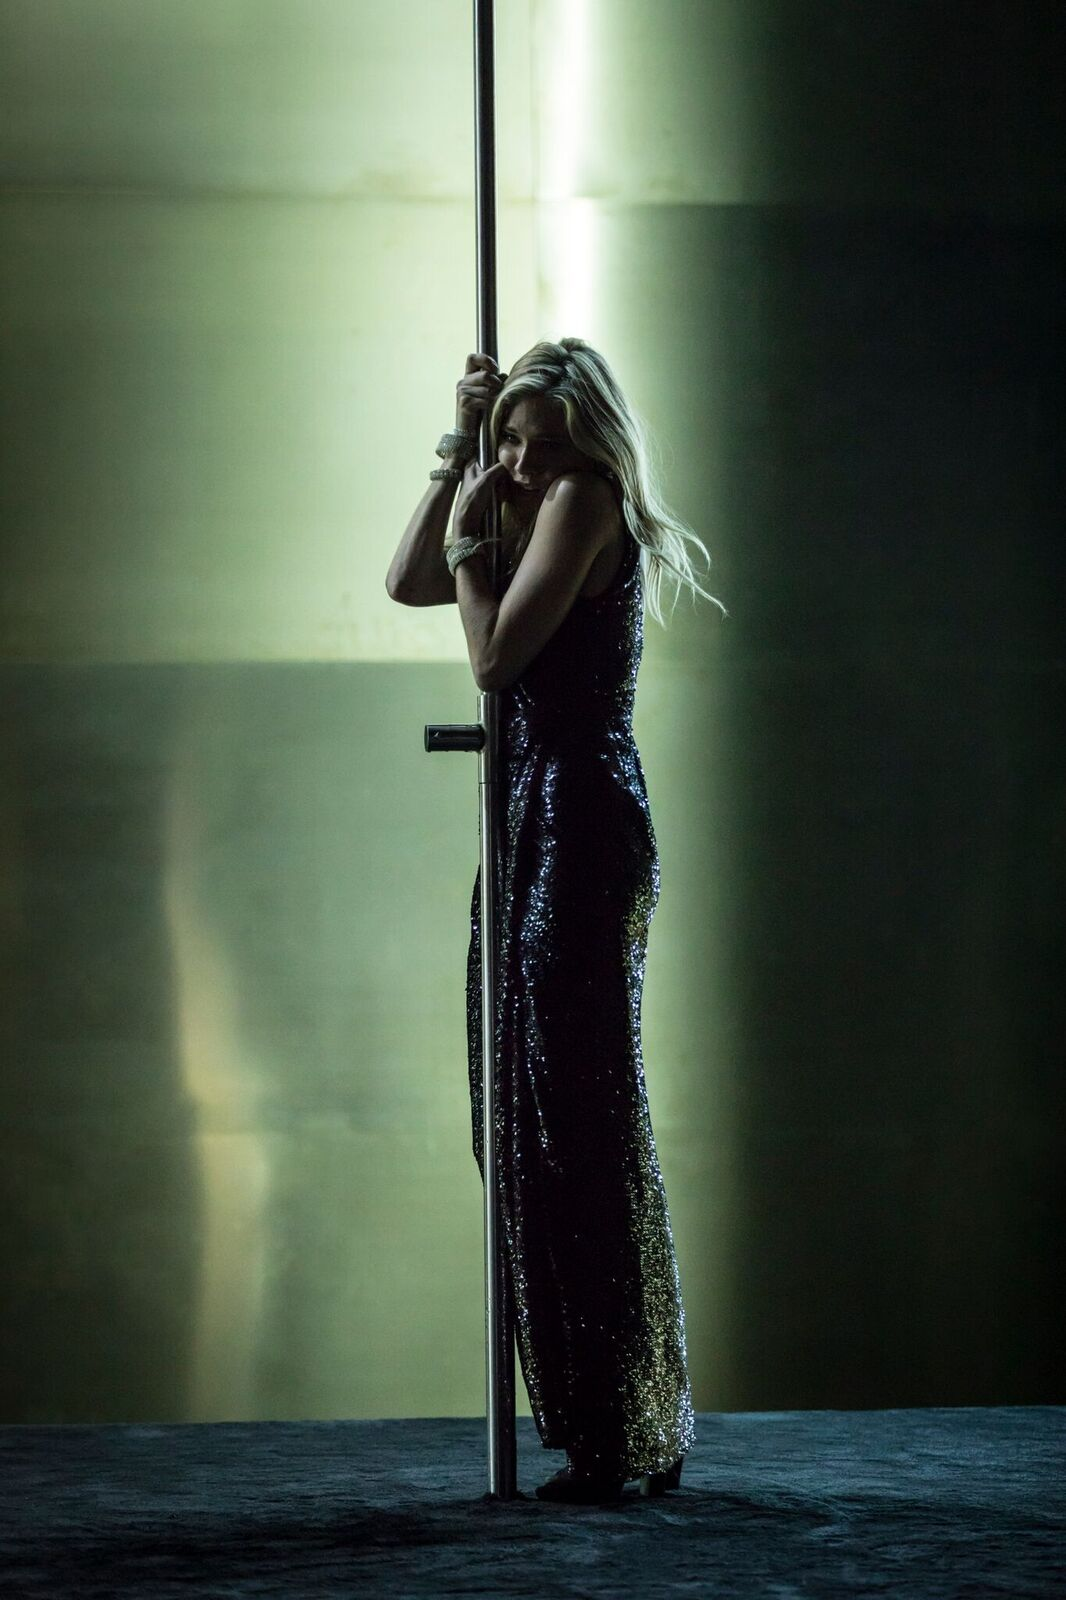 Sienna-Miller-Maggie-Cat-on-a-Hot-Tin-Roof-Photographer-credit-Johan-Persson.jpg